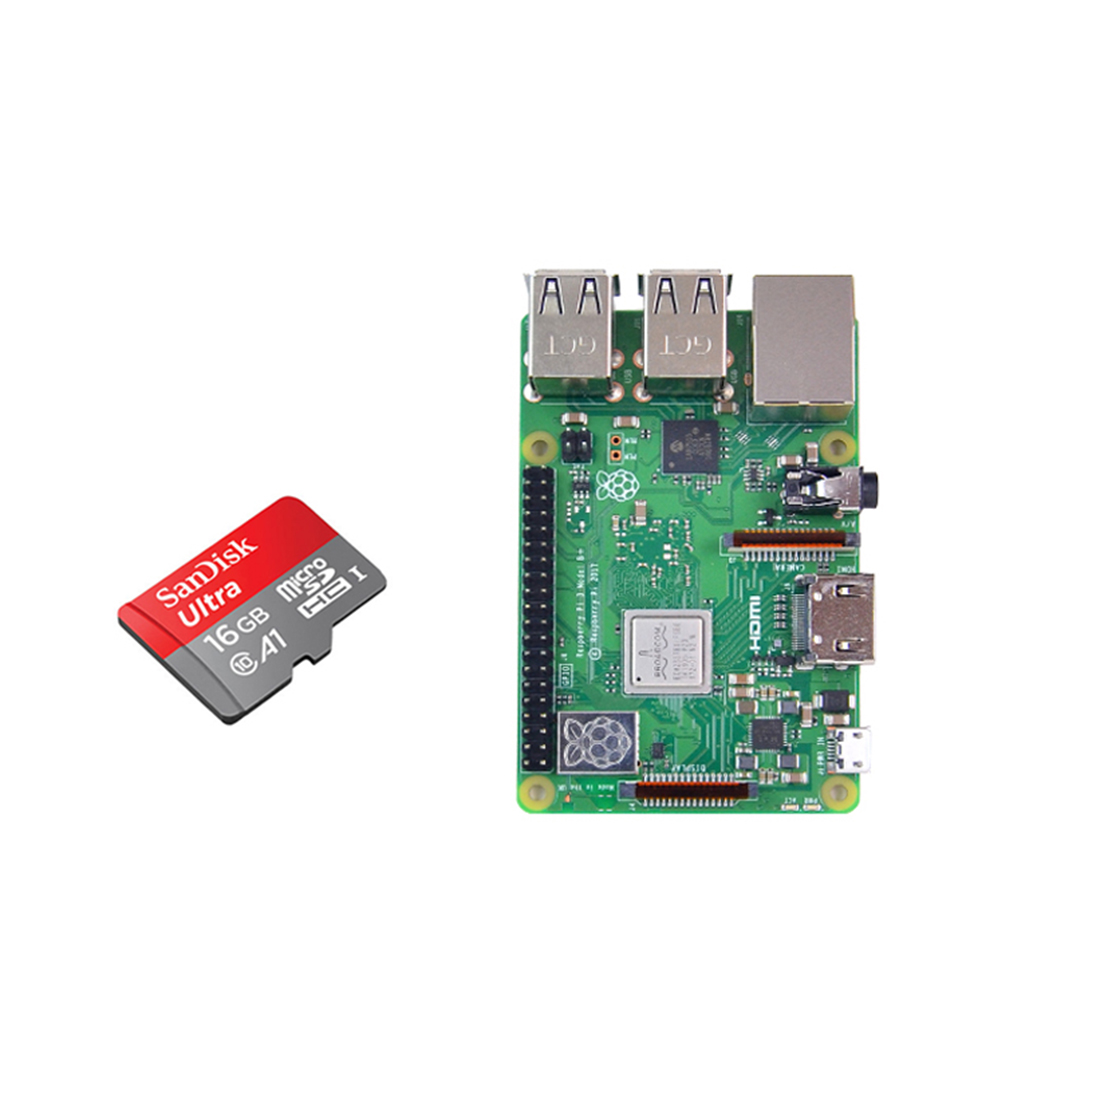 Programmable Robots Accessories Development Board With 16G Memory Card For Raspberry Pi 4 (1G Running Memory /2G Running Memory)